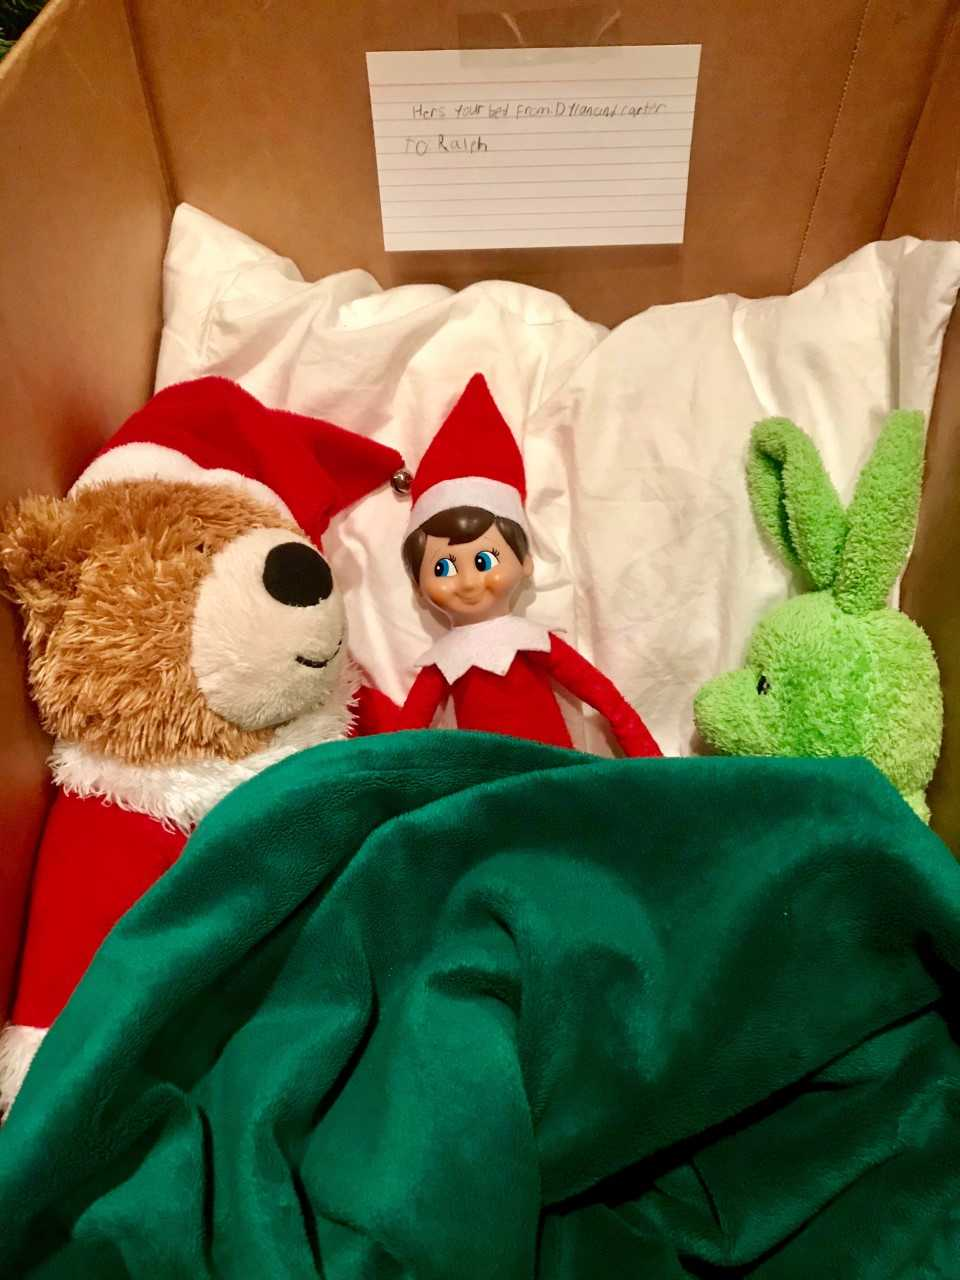 A comfy rest for Ralph the Elf